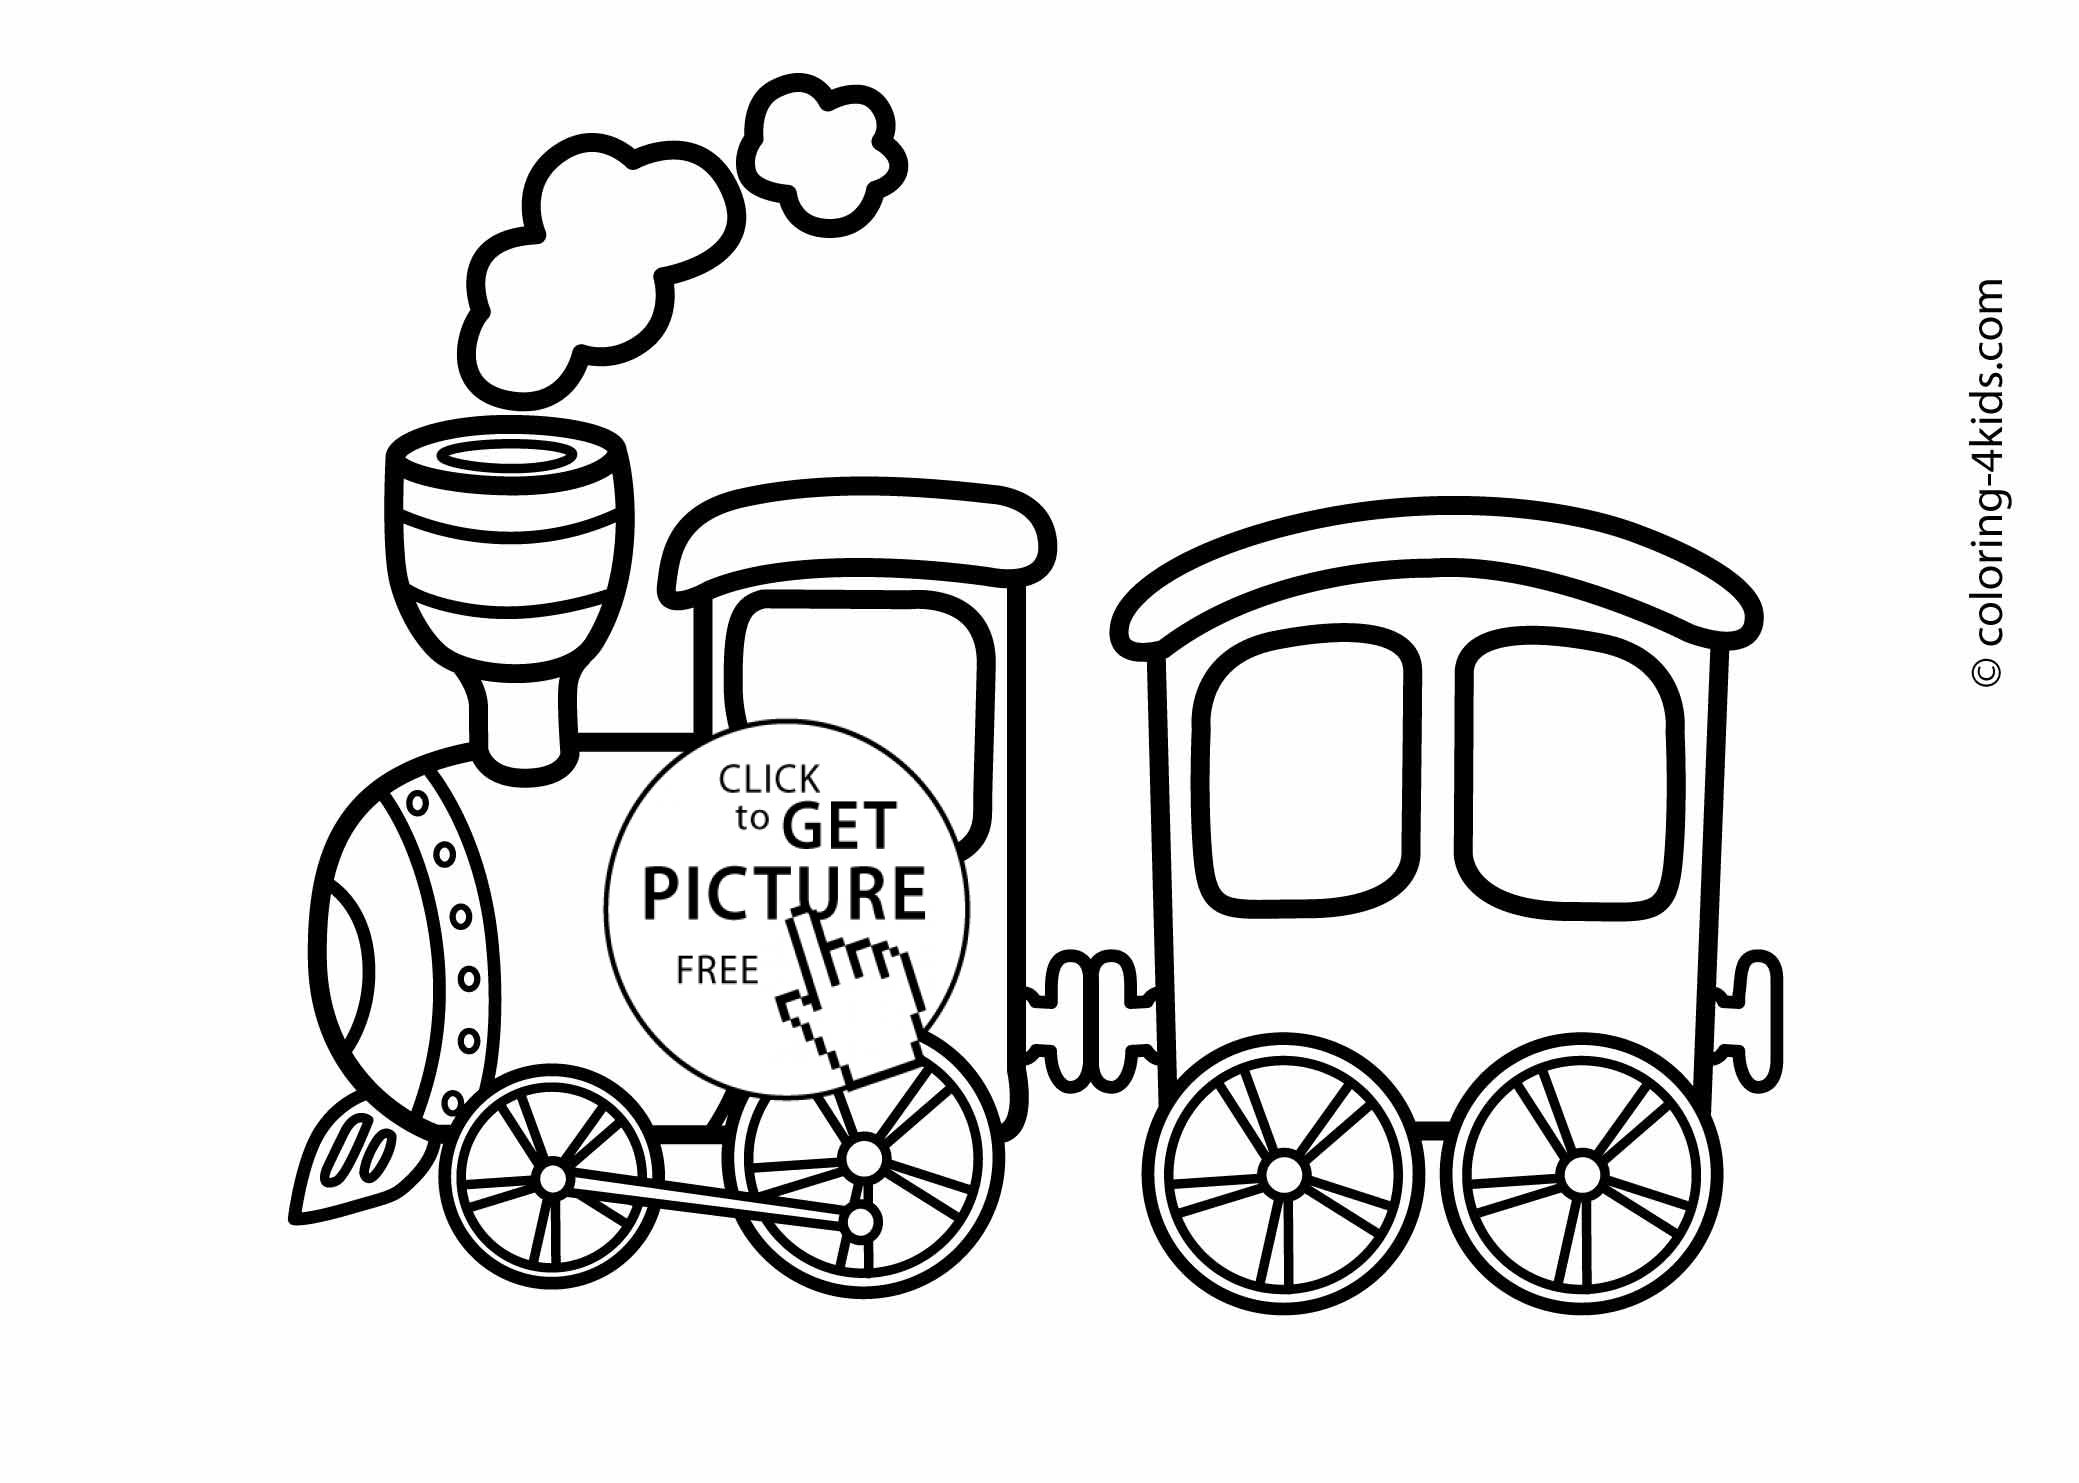 train transportation coloring pages for kids printable - Coloring 4 Kids